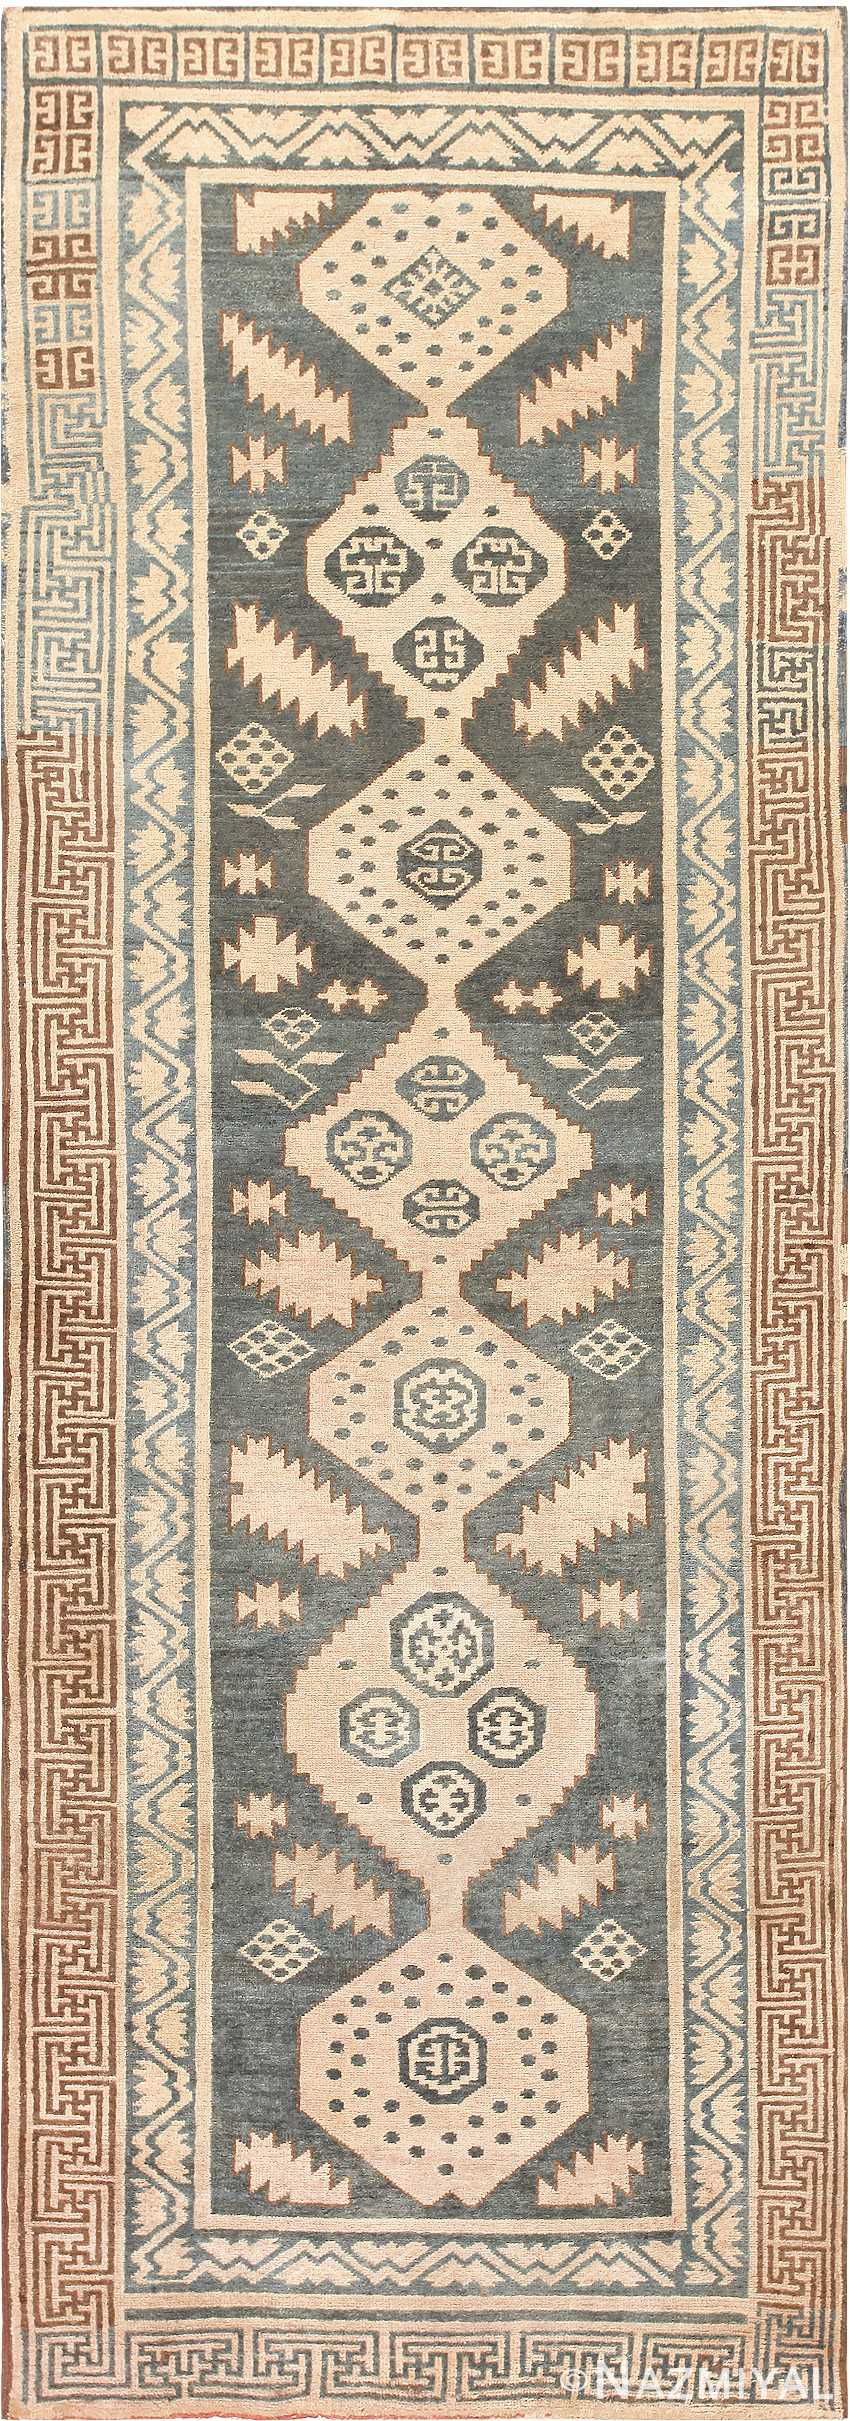 Antique Khotan Carpet 47250 Detail/Large View